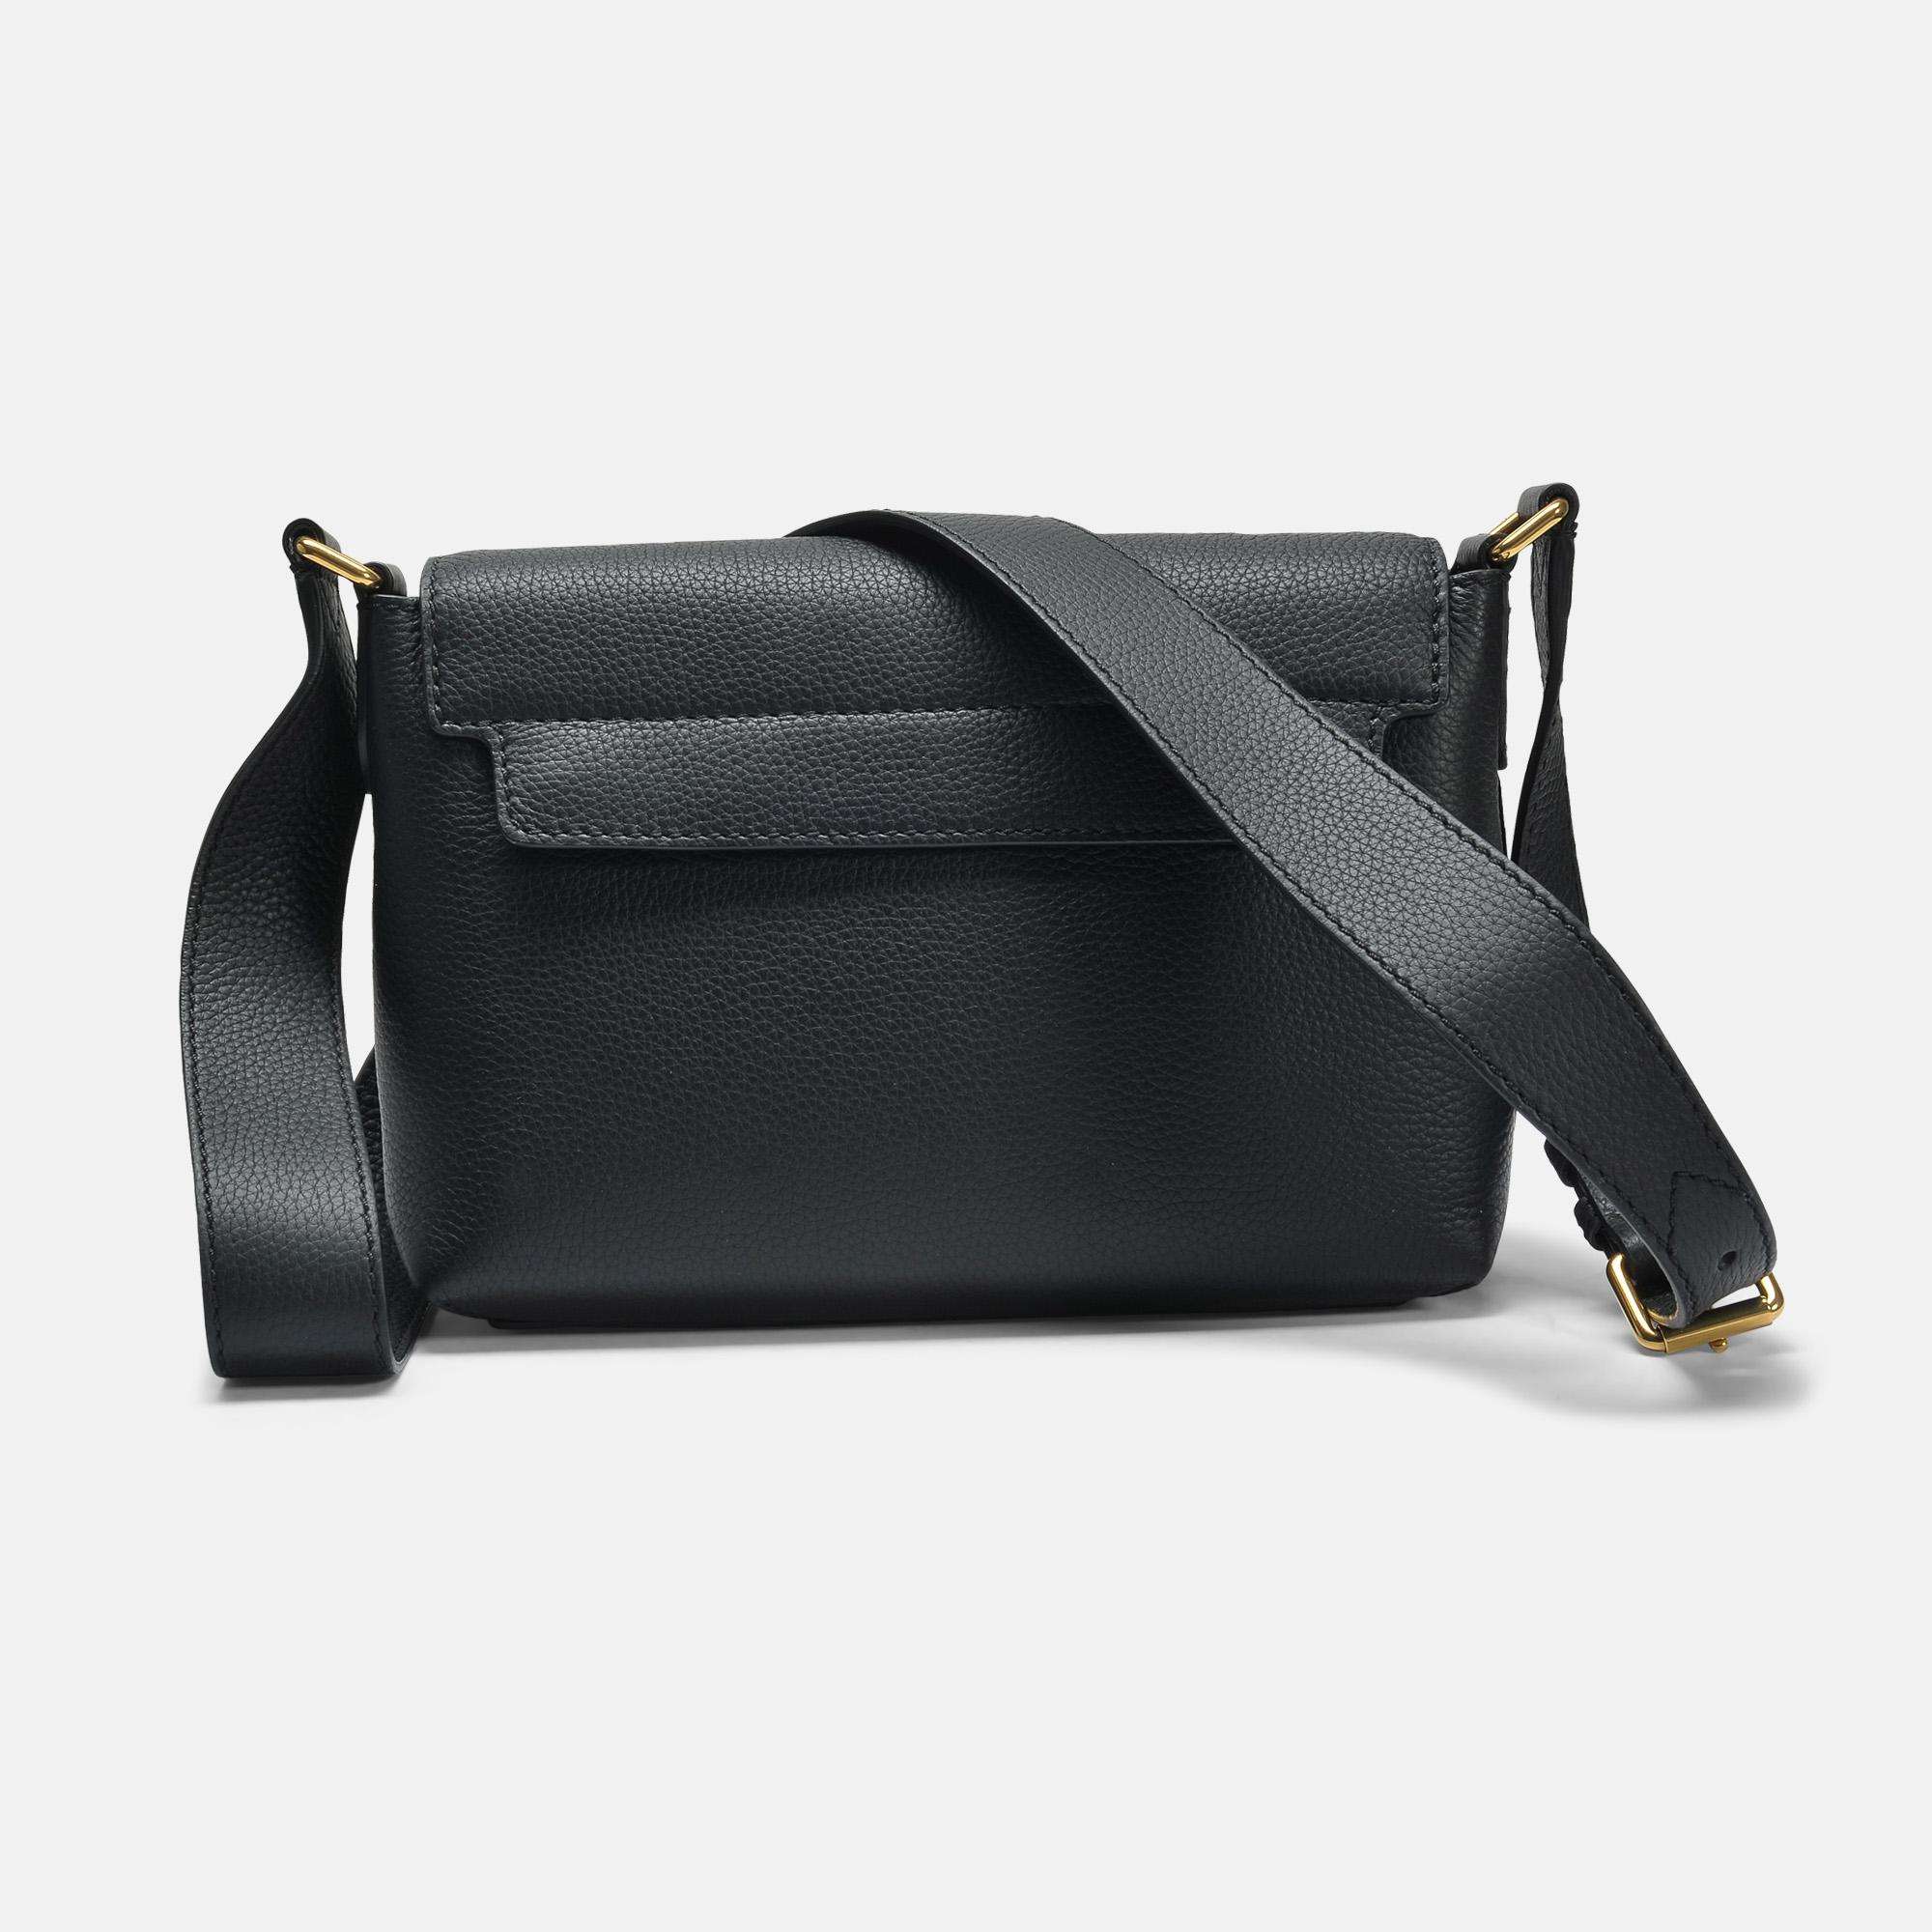 Burberry Leather Small Burleigh Crossbody Bag In Black Grained Calfskin